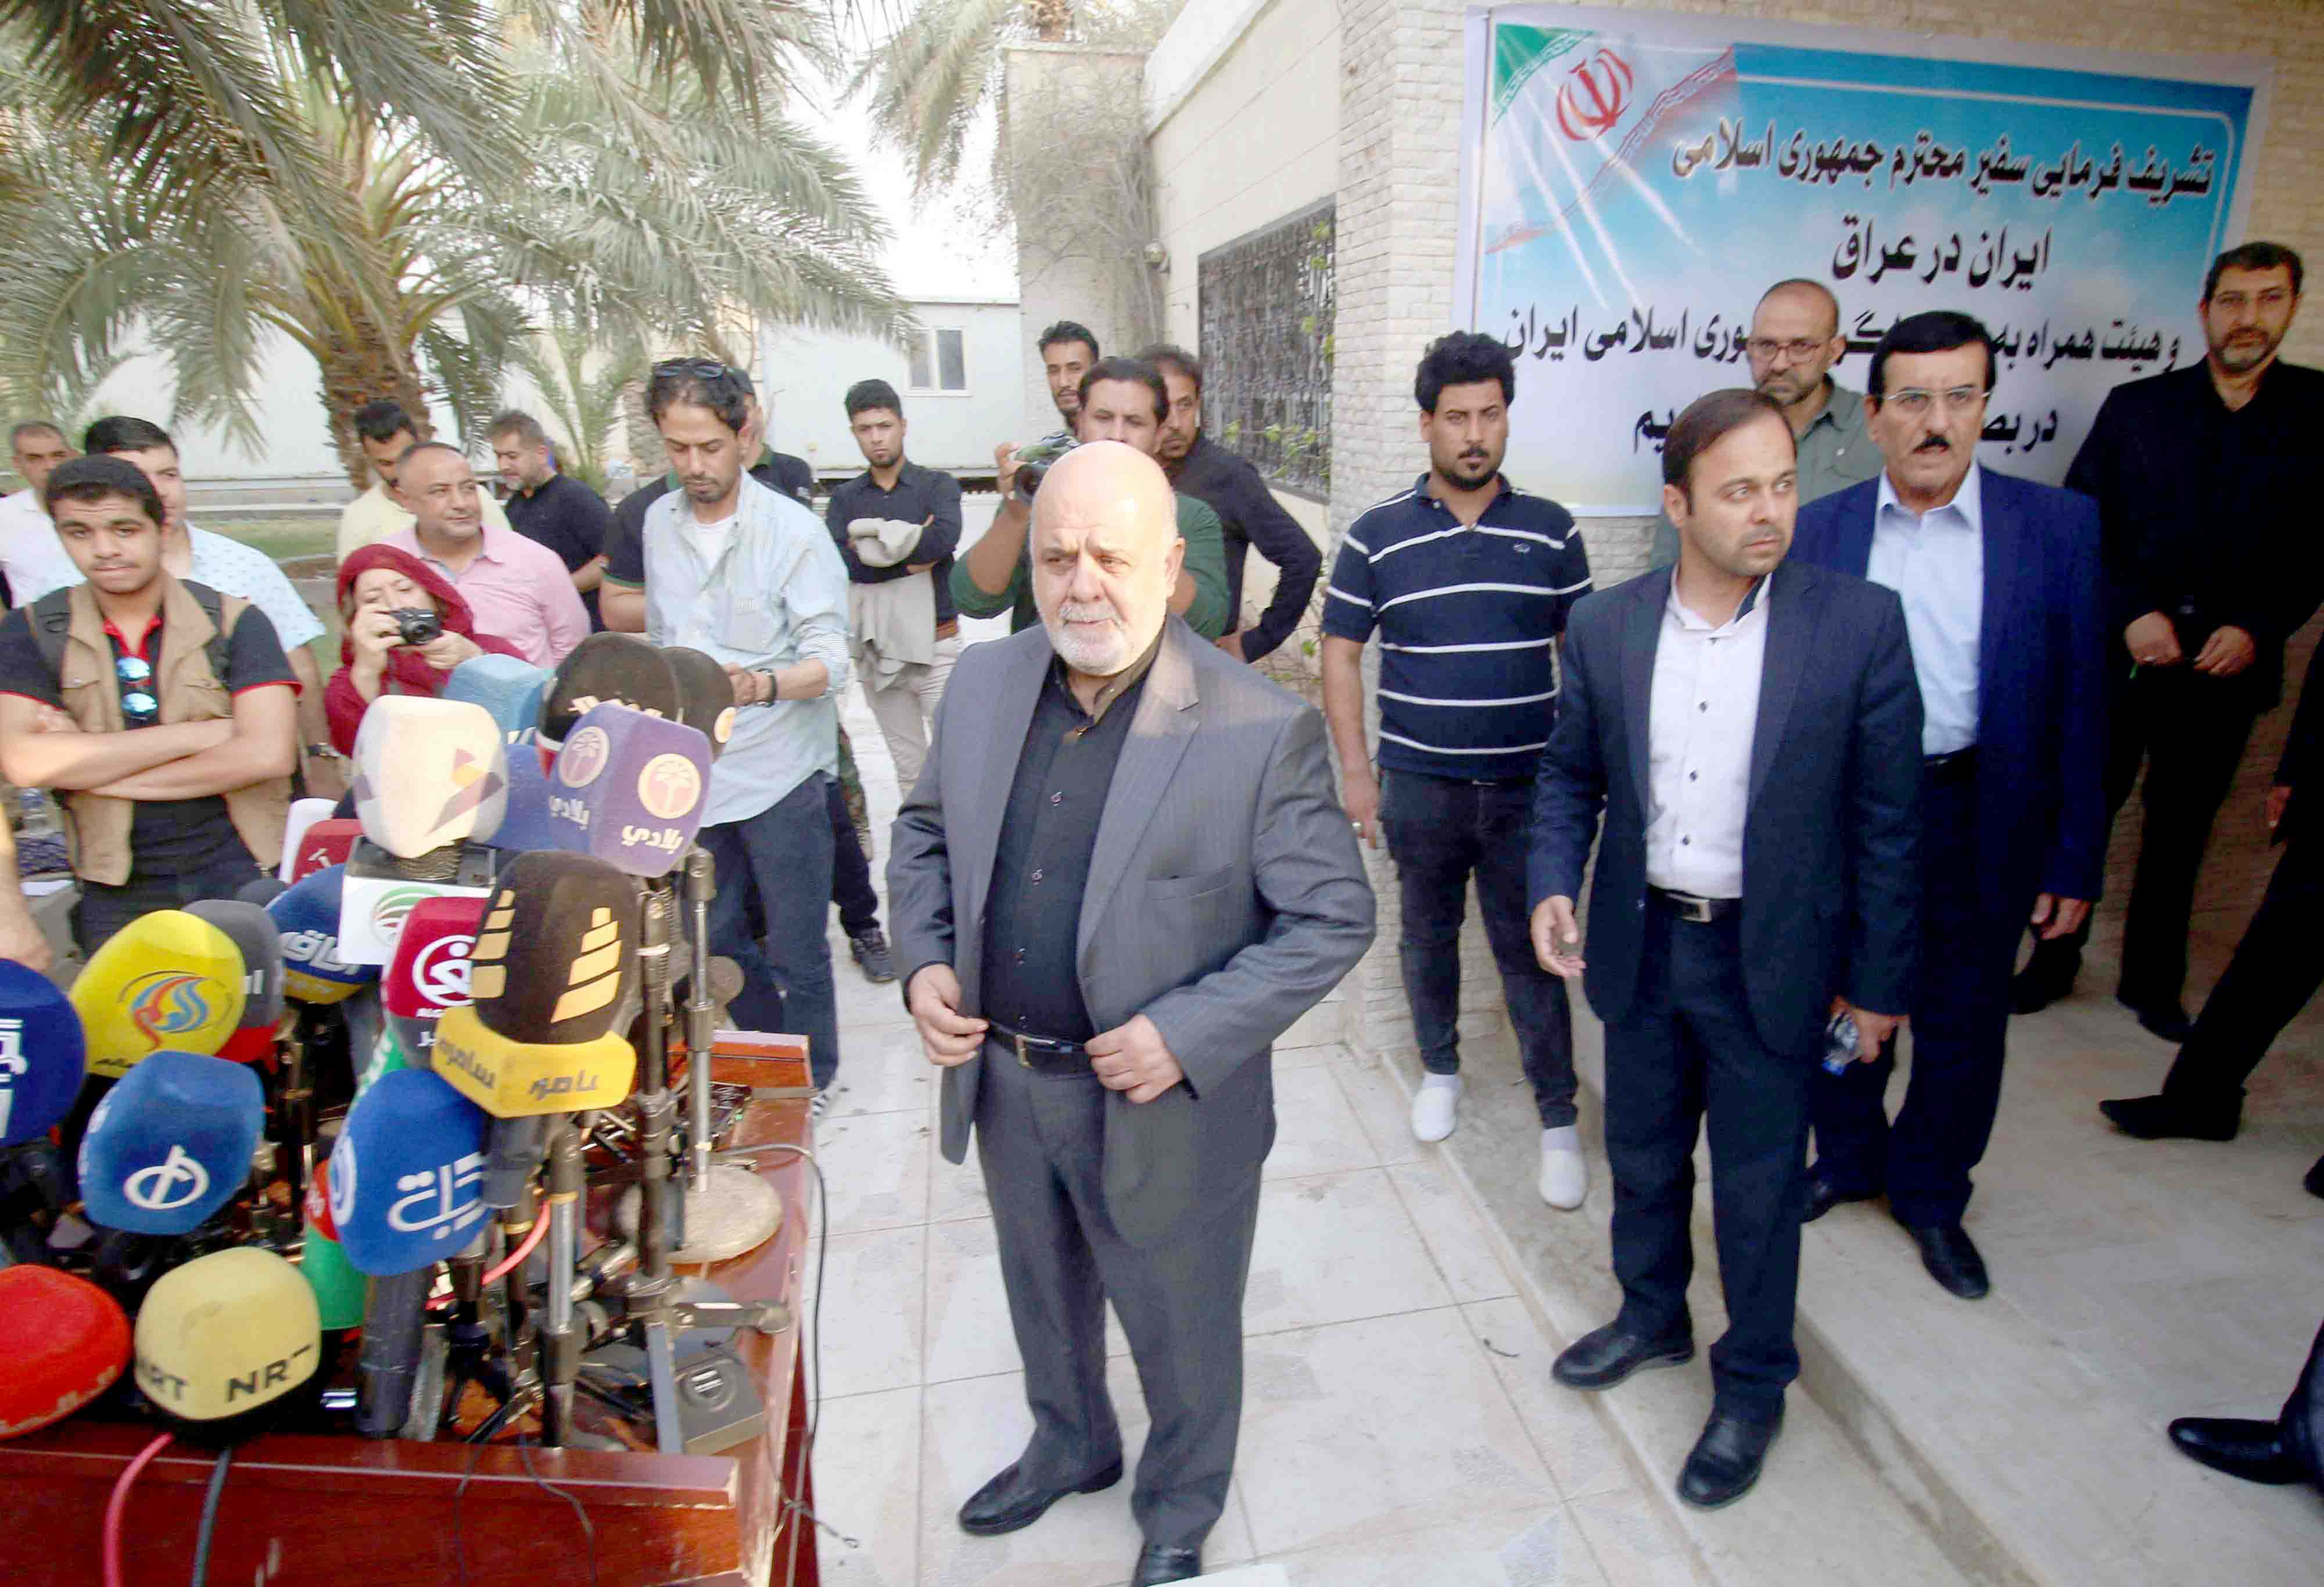 Iranian ambassador in Iraq Iraj Masjedi prepares to speak during a news conference outside the building of the Iranian consulate in Basra, last September. (AFP)